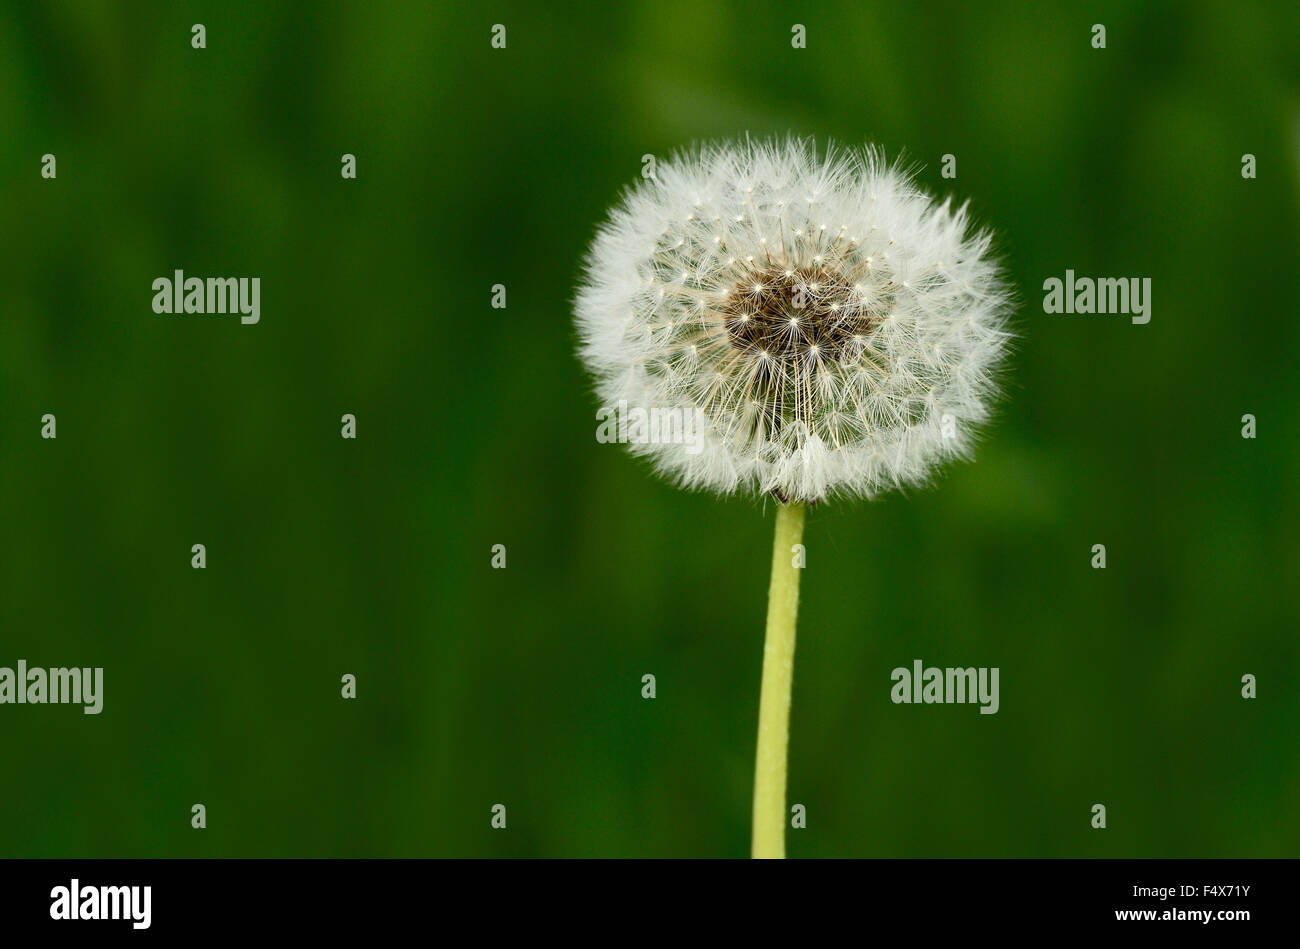 A close up macro image of a dandelion head gone to seed on a dark green background. - Stock Image